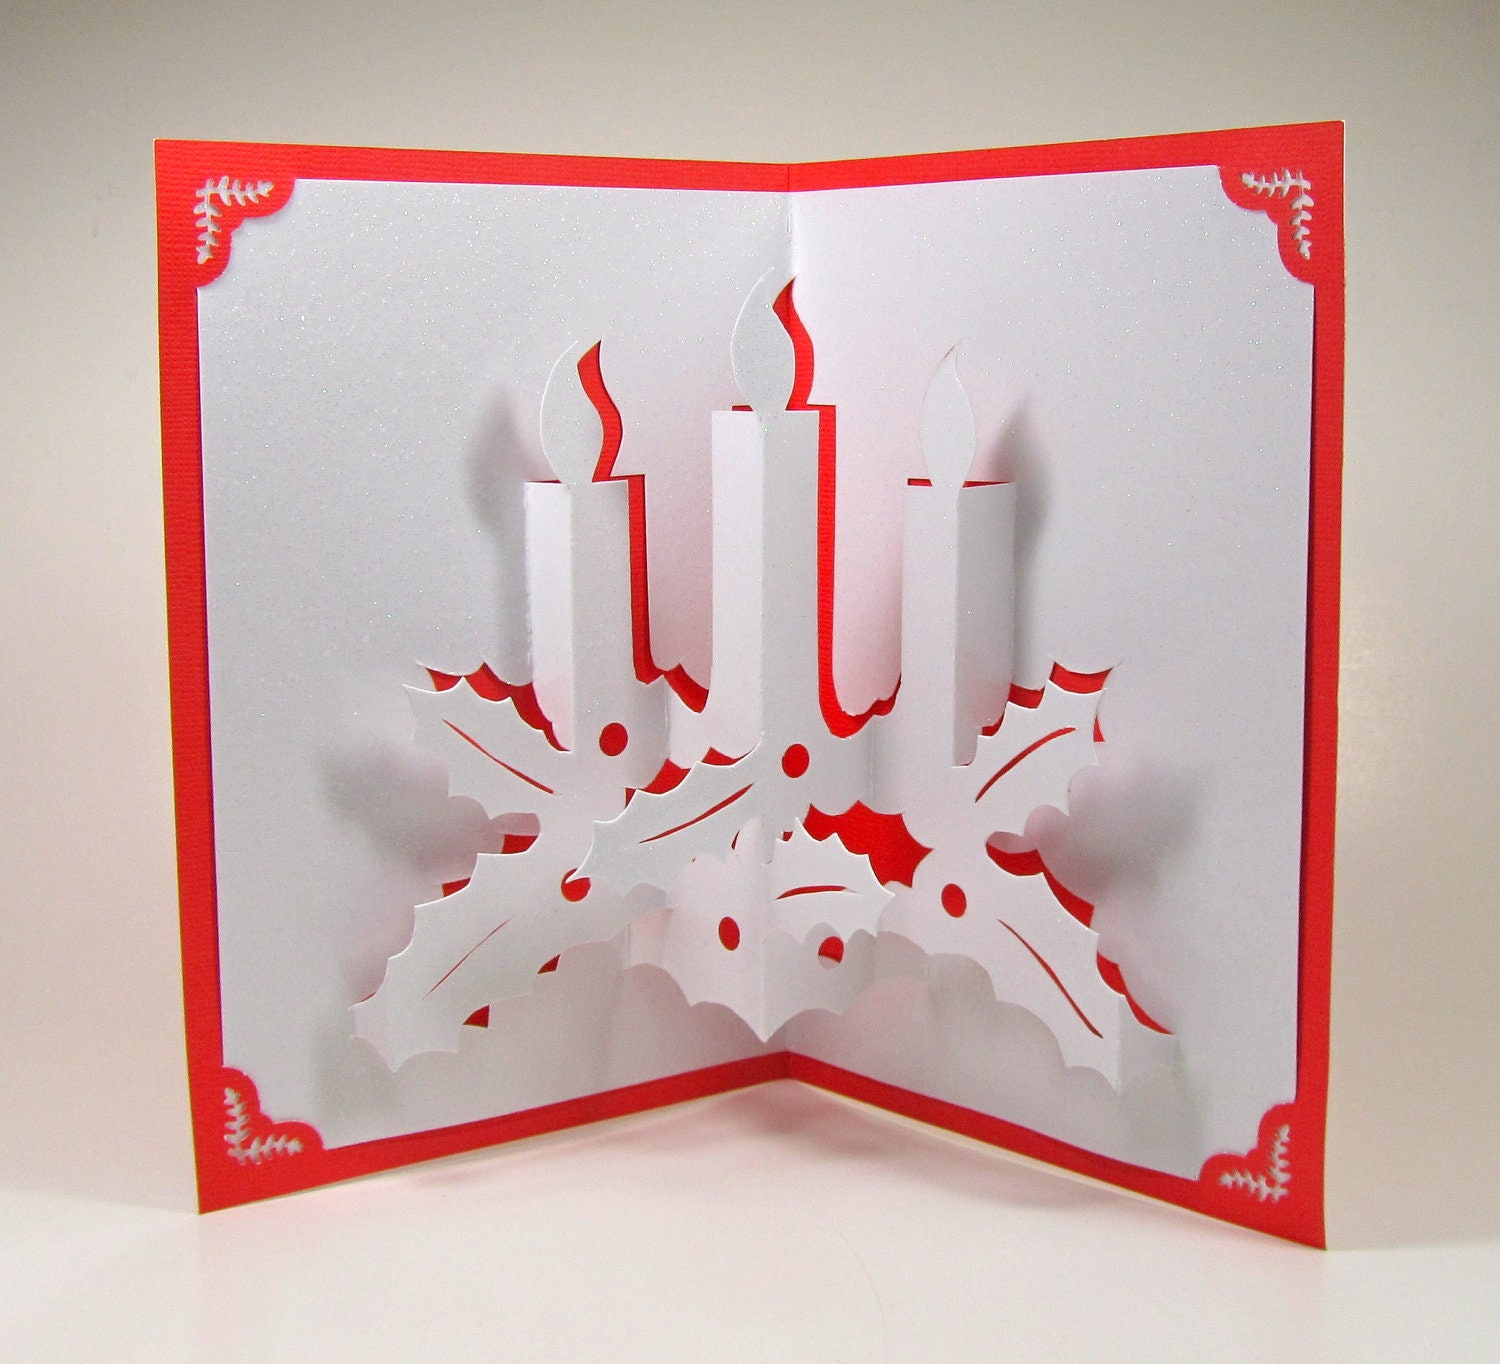 CHRISTMAS CANDLES 3D Pop Up Greeting Card Home Décor by BoldFolds: www.etsy.com/listing/112946126/christmas-candles-3d-pop-up-greeting